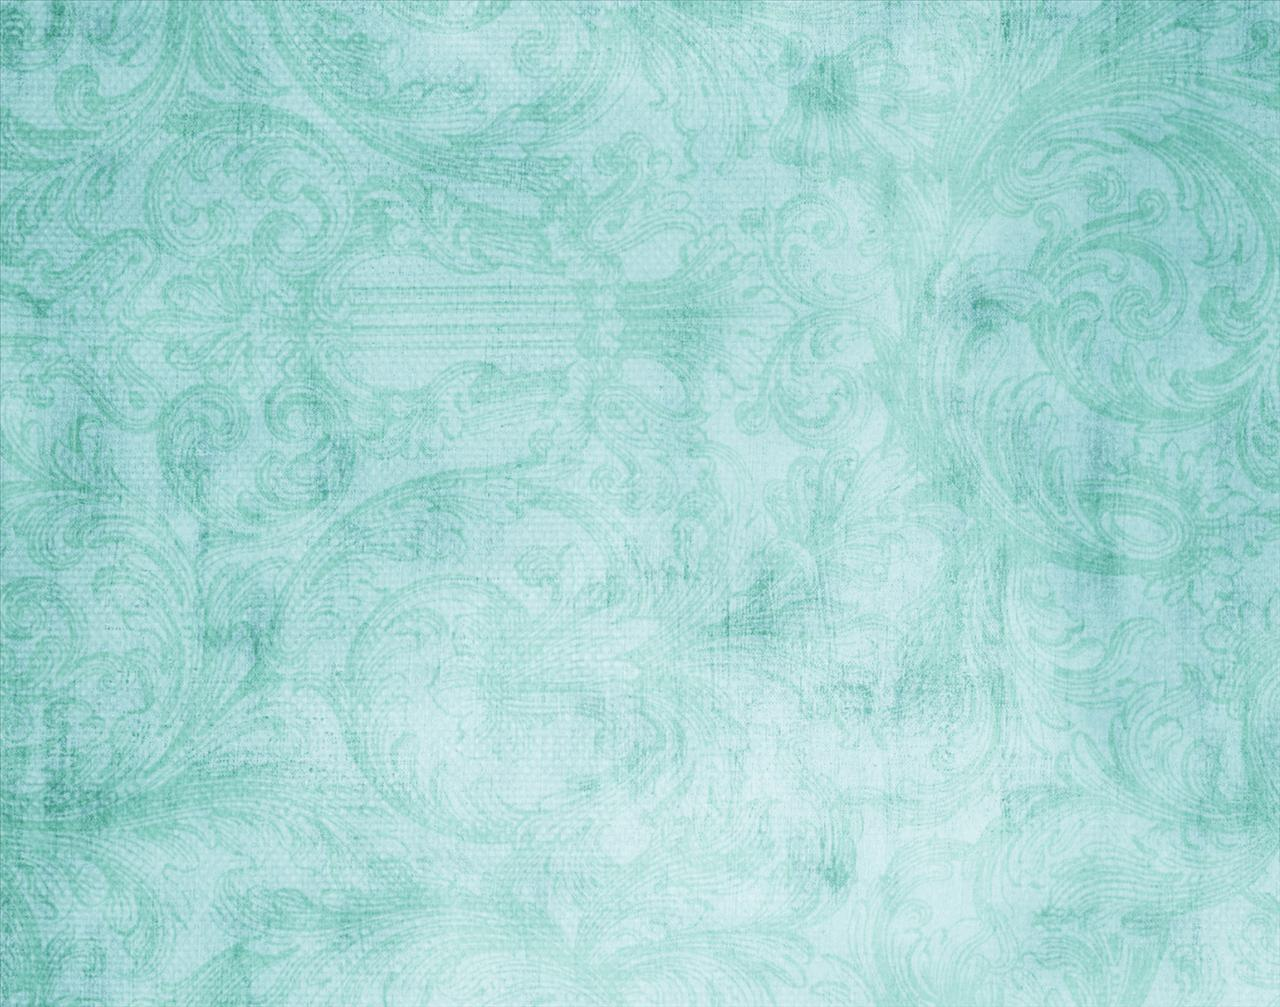 turquoise background wallpaper images